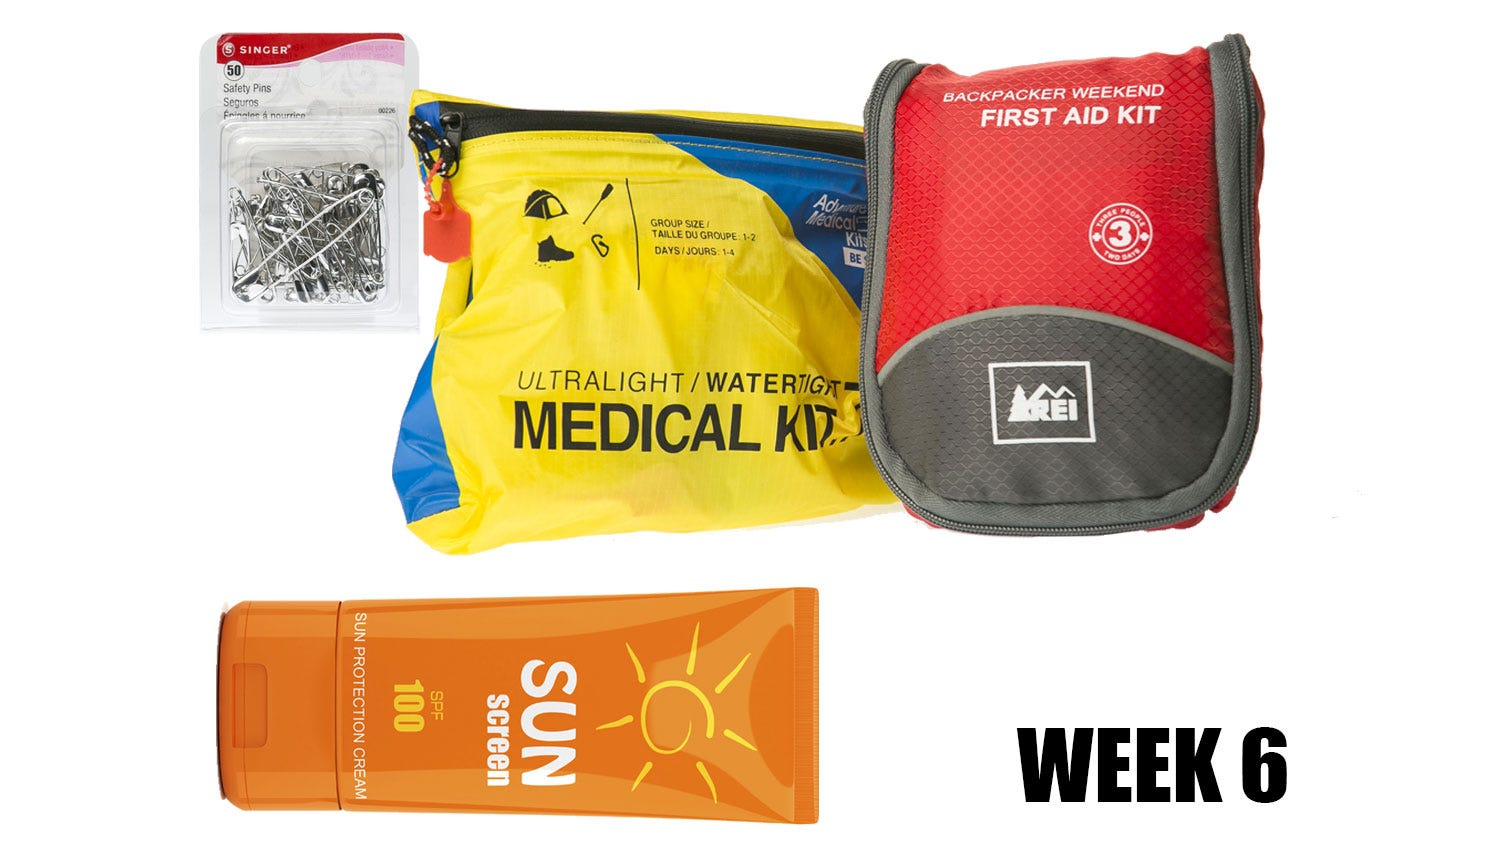 Week 6: First aid preparation is a focus this week